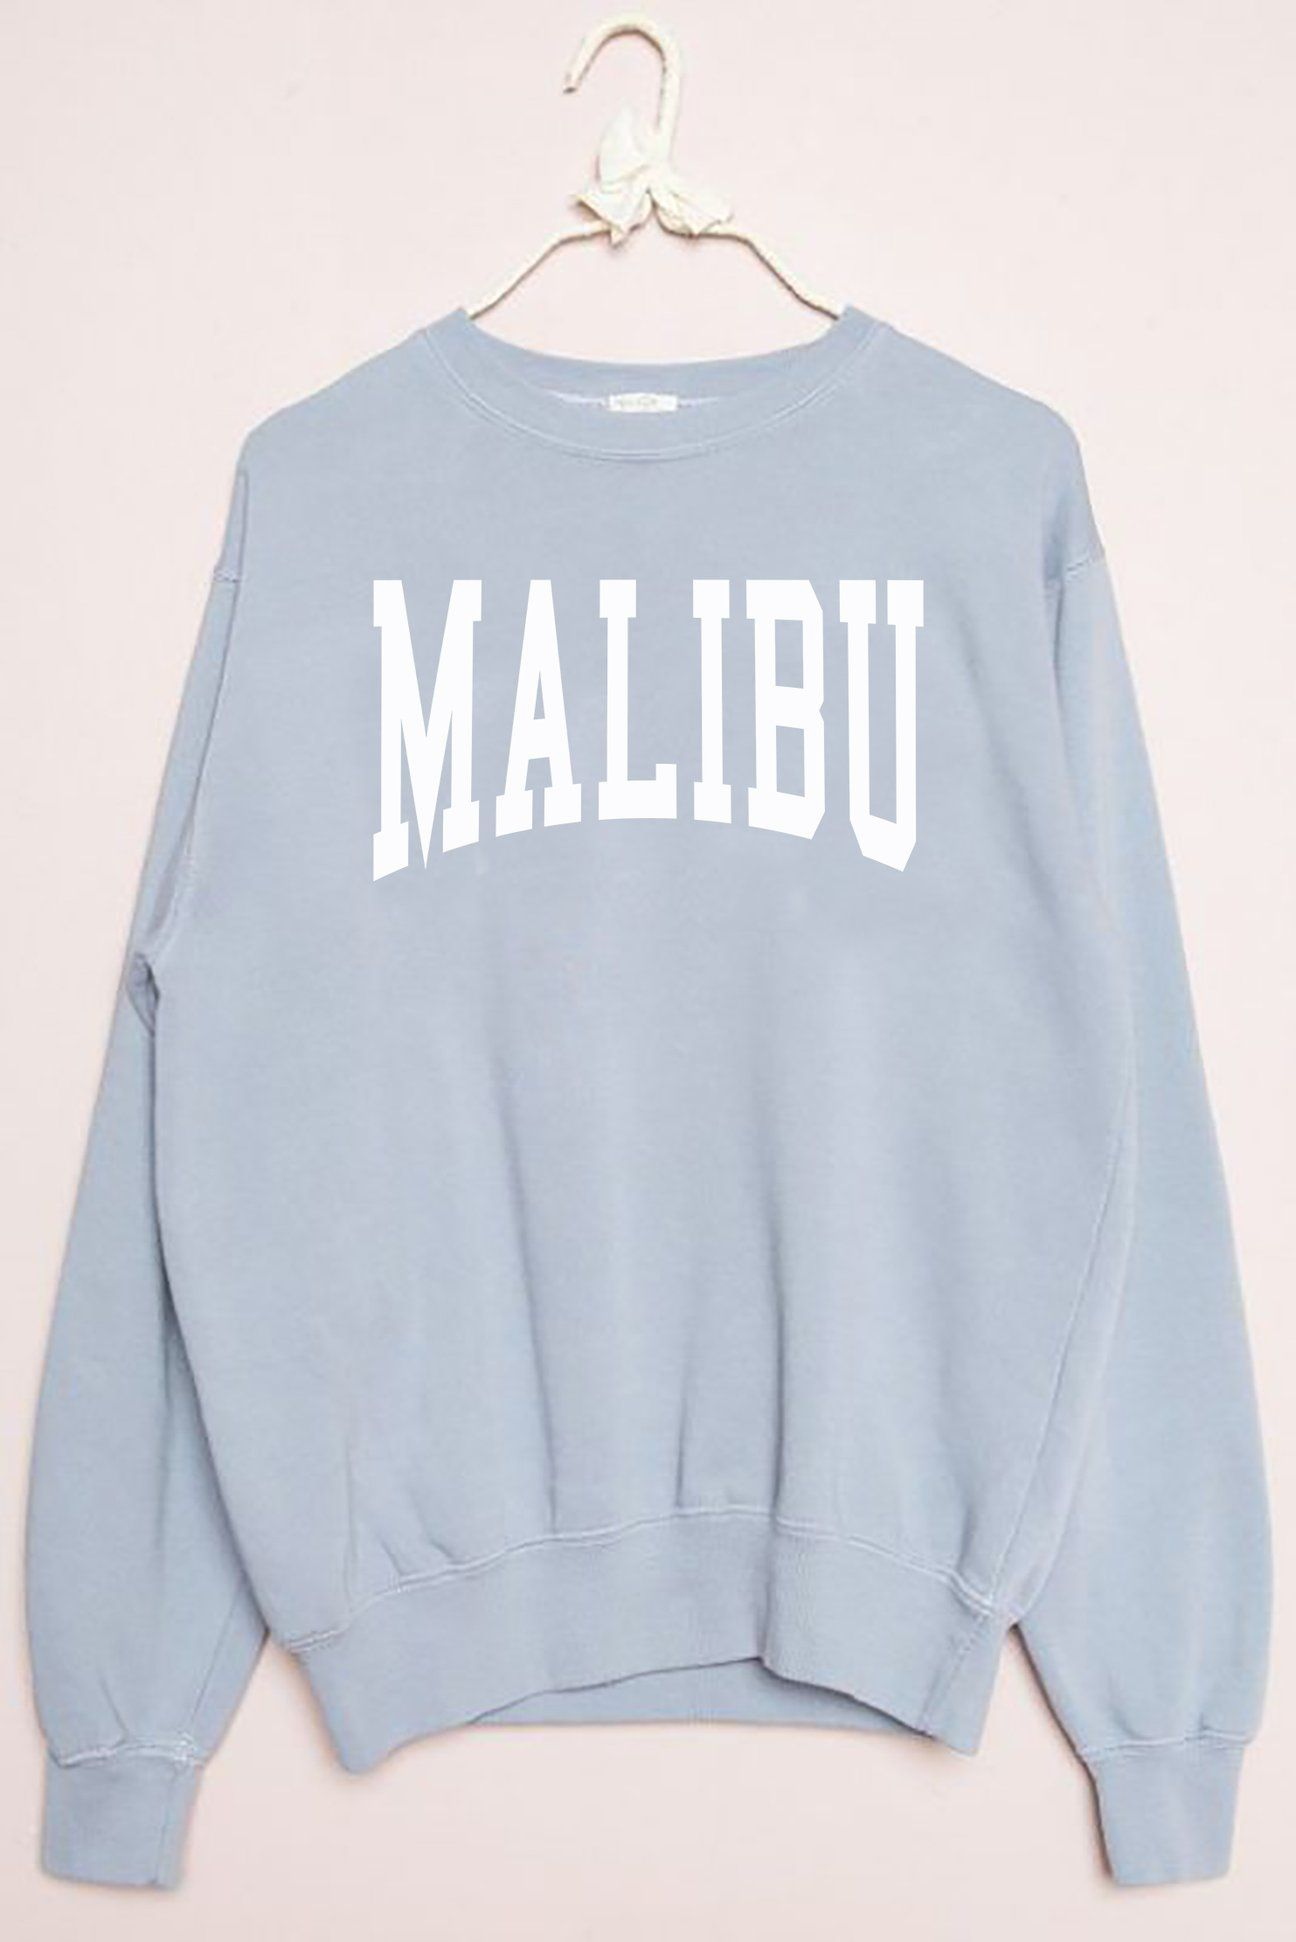 bac933d7 Malibu Sweatshirt | we never go out of Style. | Sweatshirt outfit ...